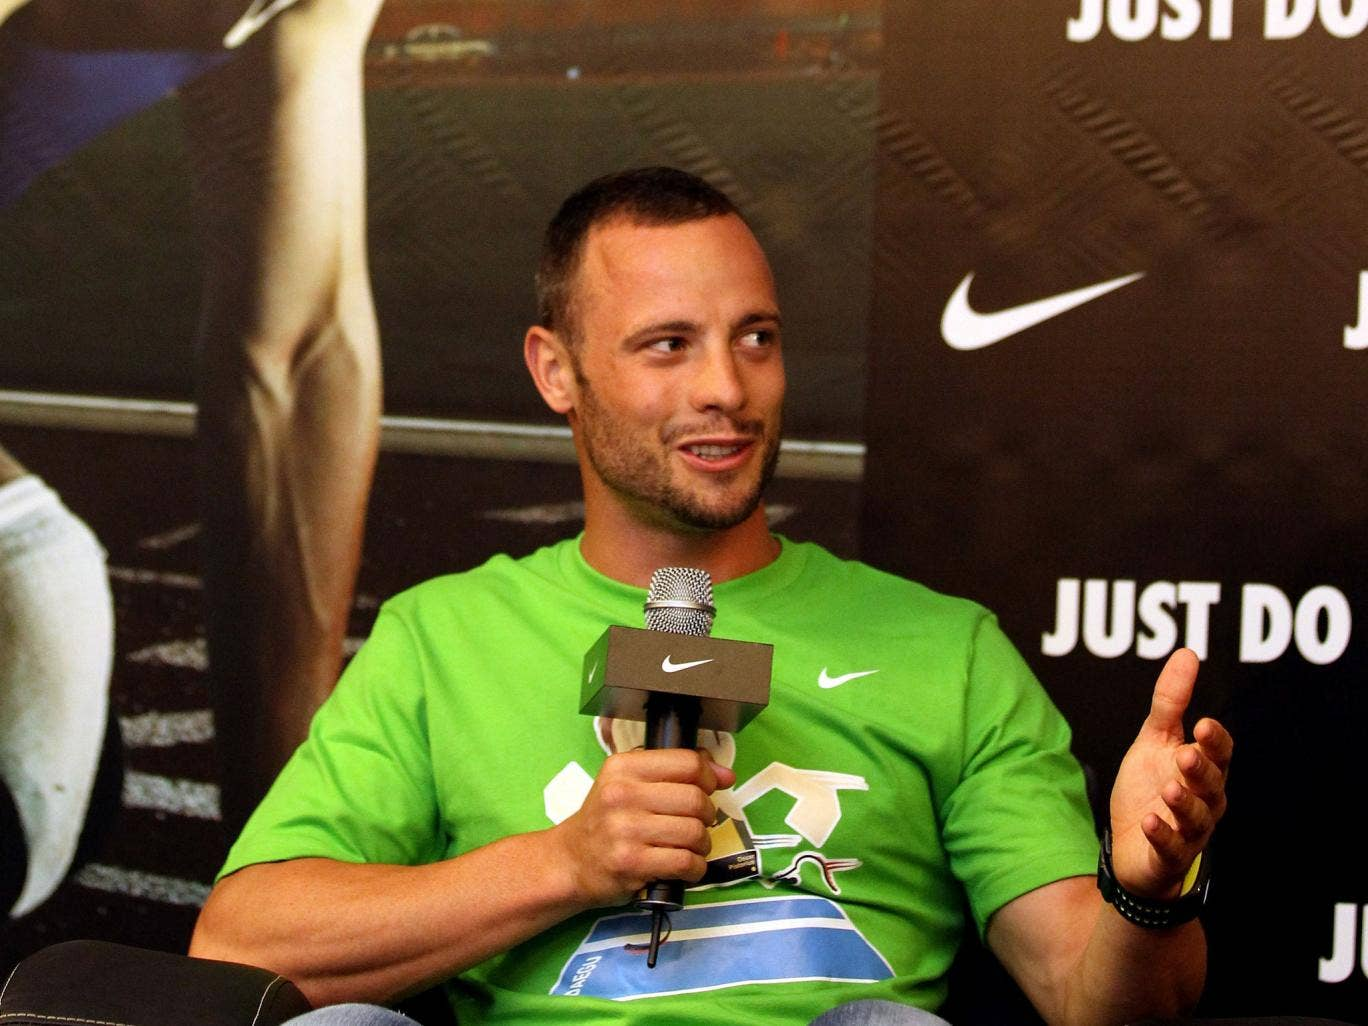 Off message: Oscar Pistorius faces a new reality after his Olympic fame